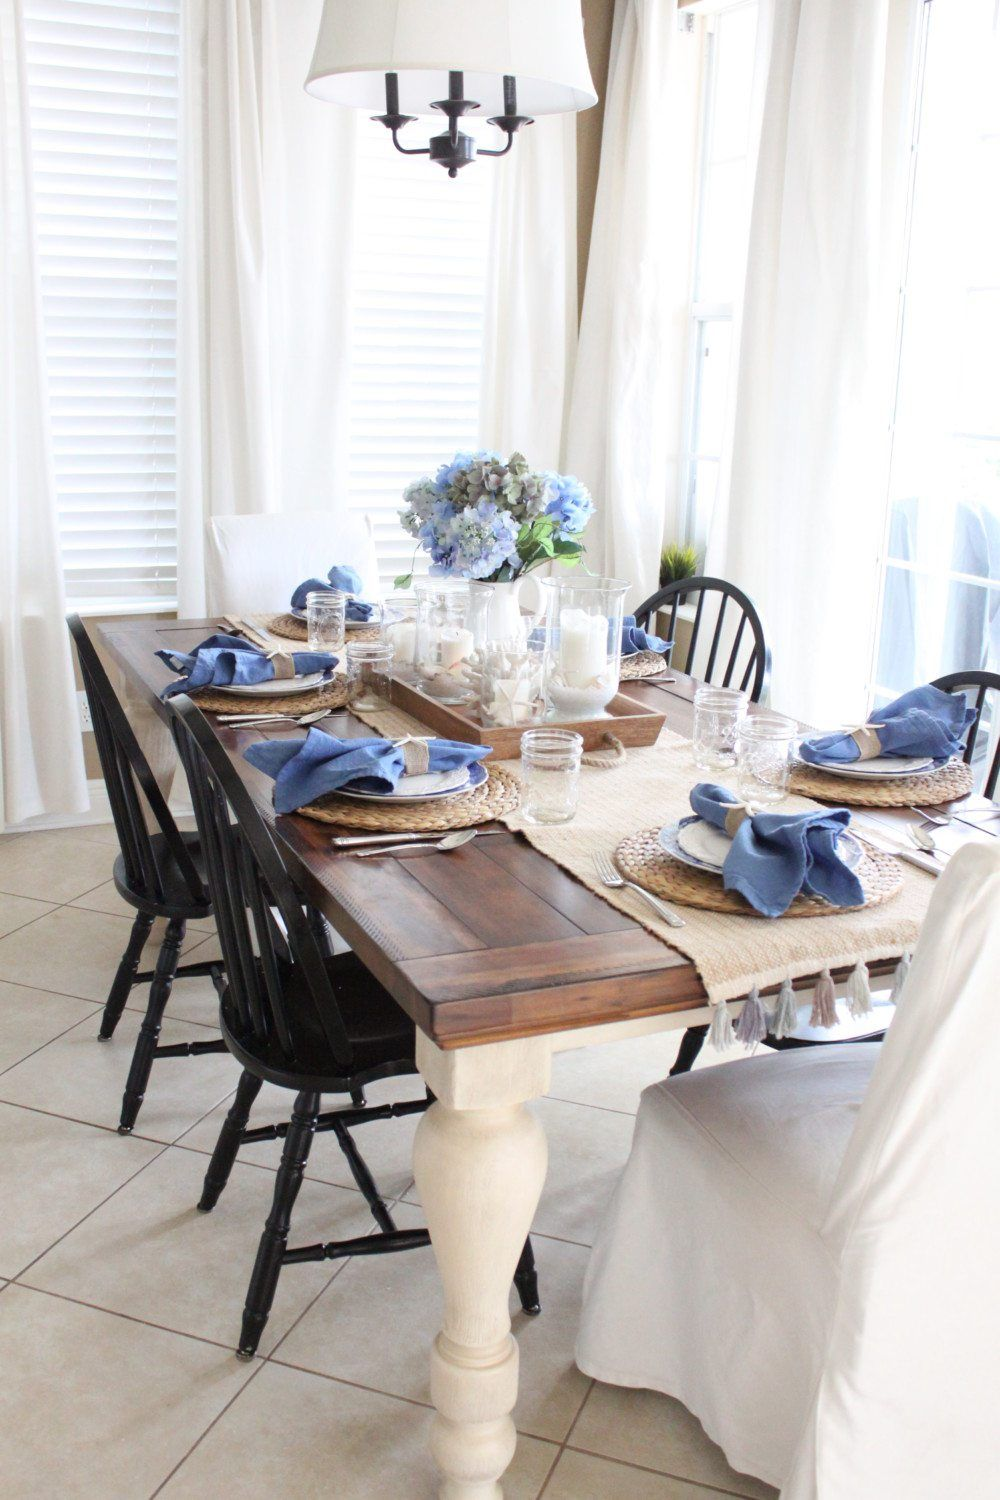 Diy Summer Ideas Redhead Can Decorate Farm Table Dining Room Dining Table Farmhouse Dining Table